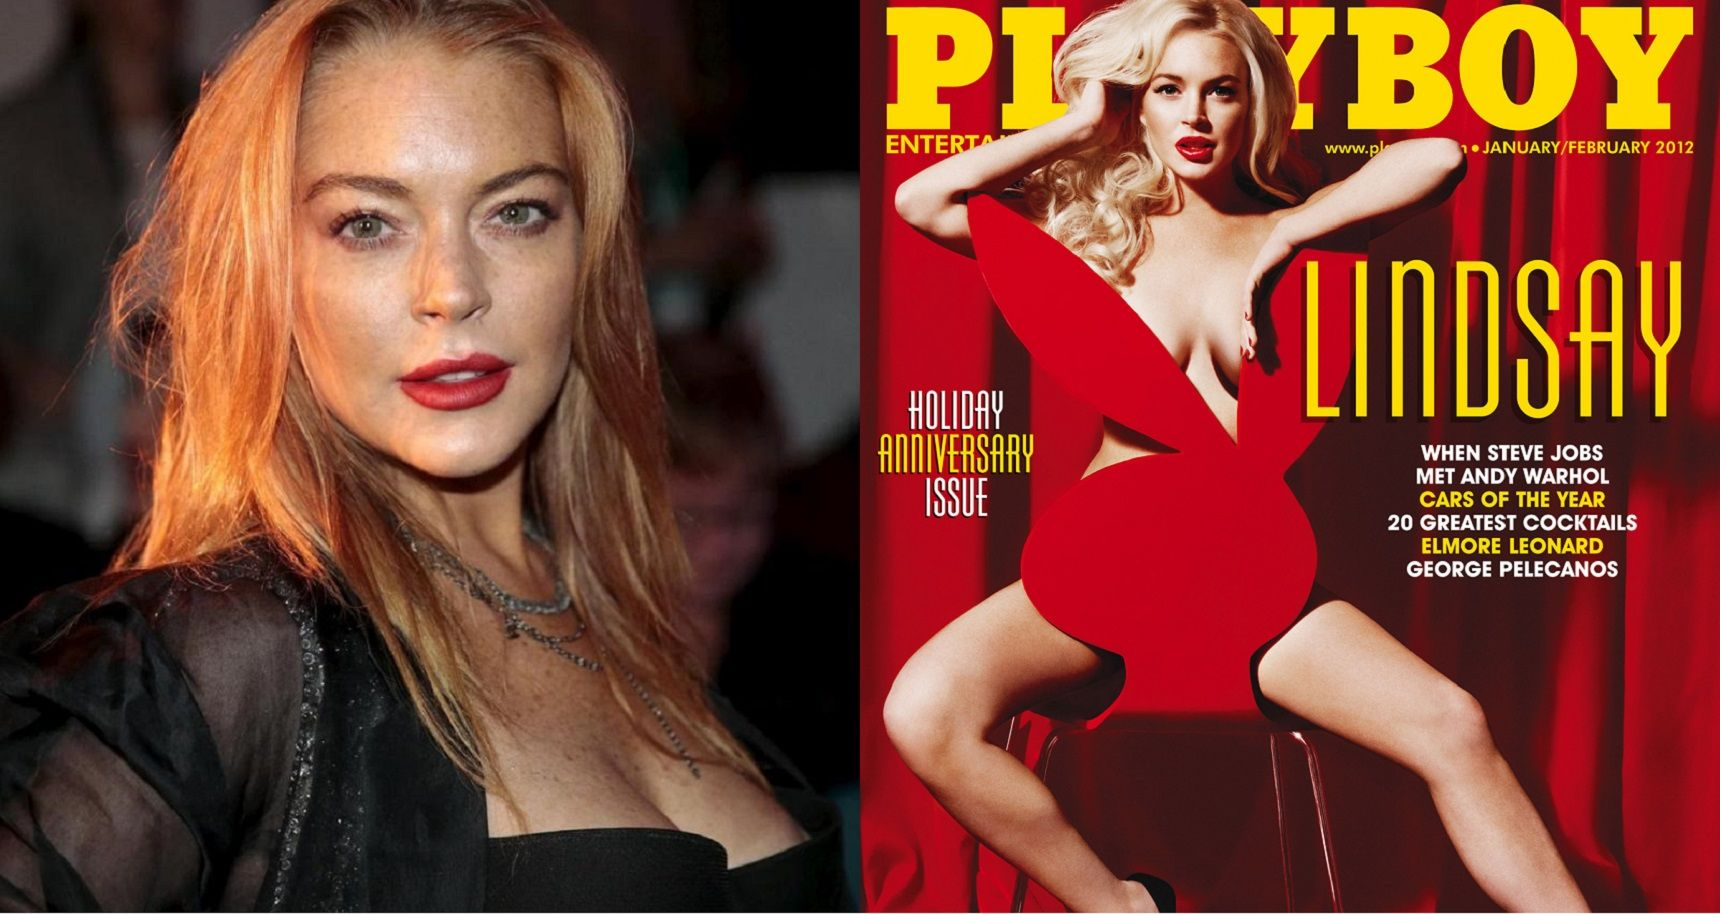 10 Celebrities Who Were Wrong About Playboy Helping Their Career